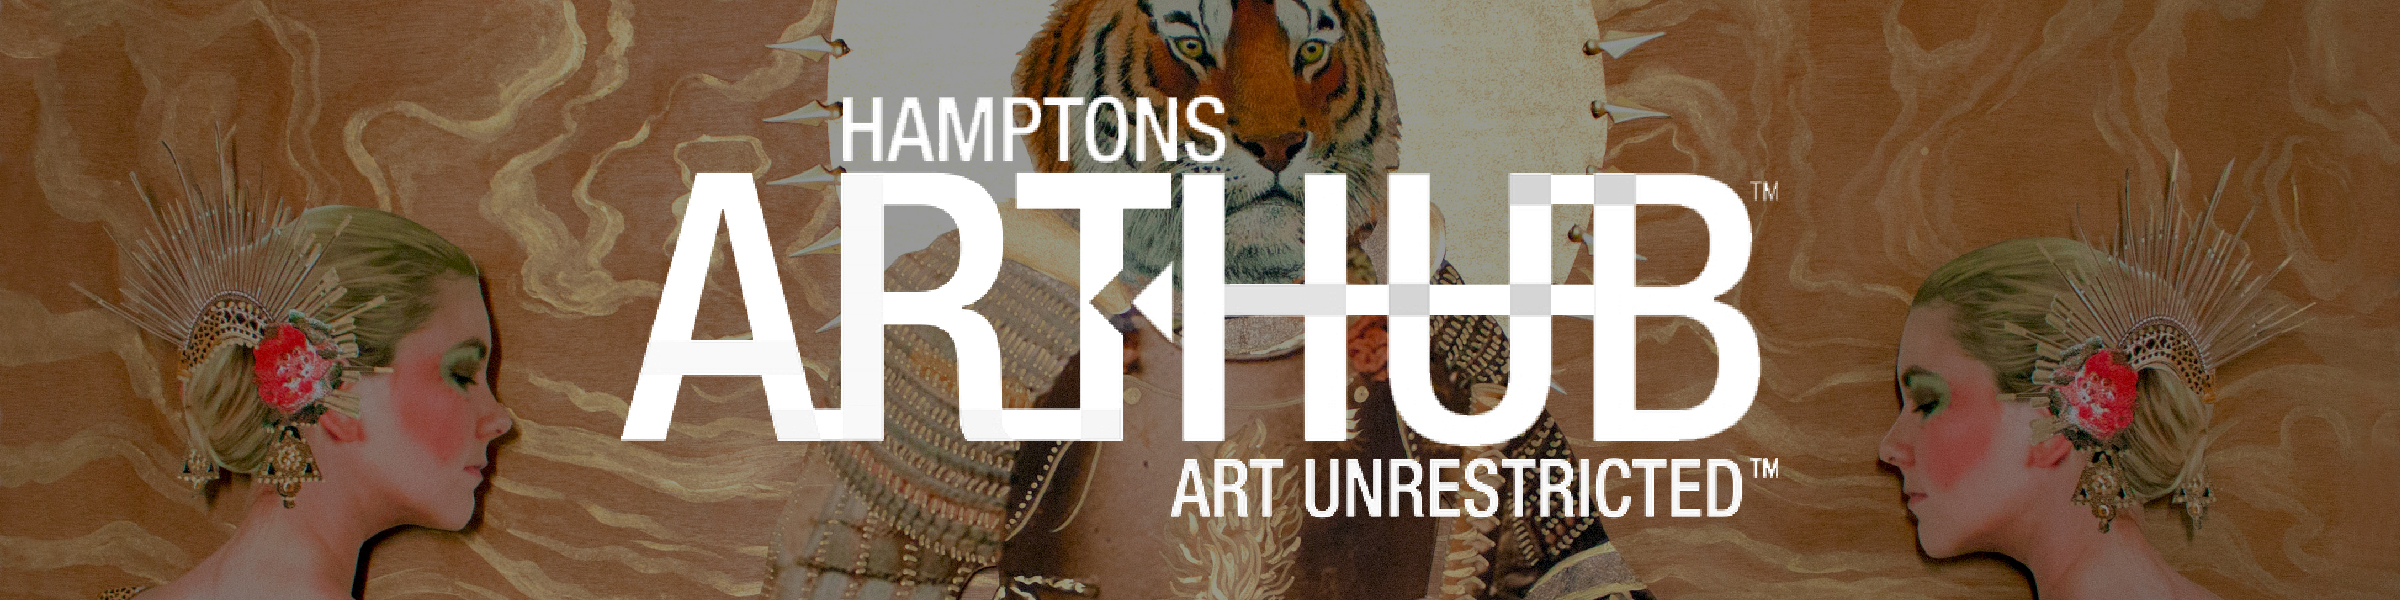 """""""Part of the fun of art fair weeks is checking out new art fairs to the scene. This year is no exception.""""   - Hamptons Art Hub, 5.3.17"""